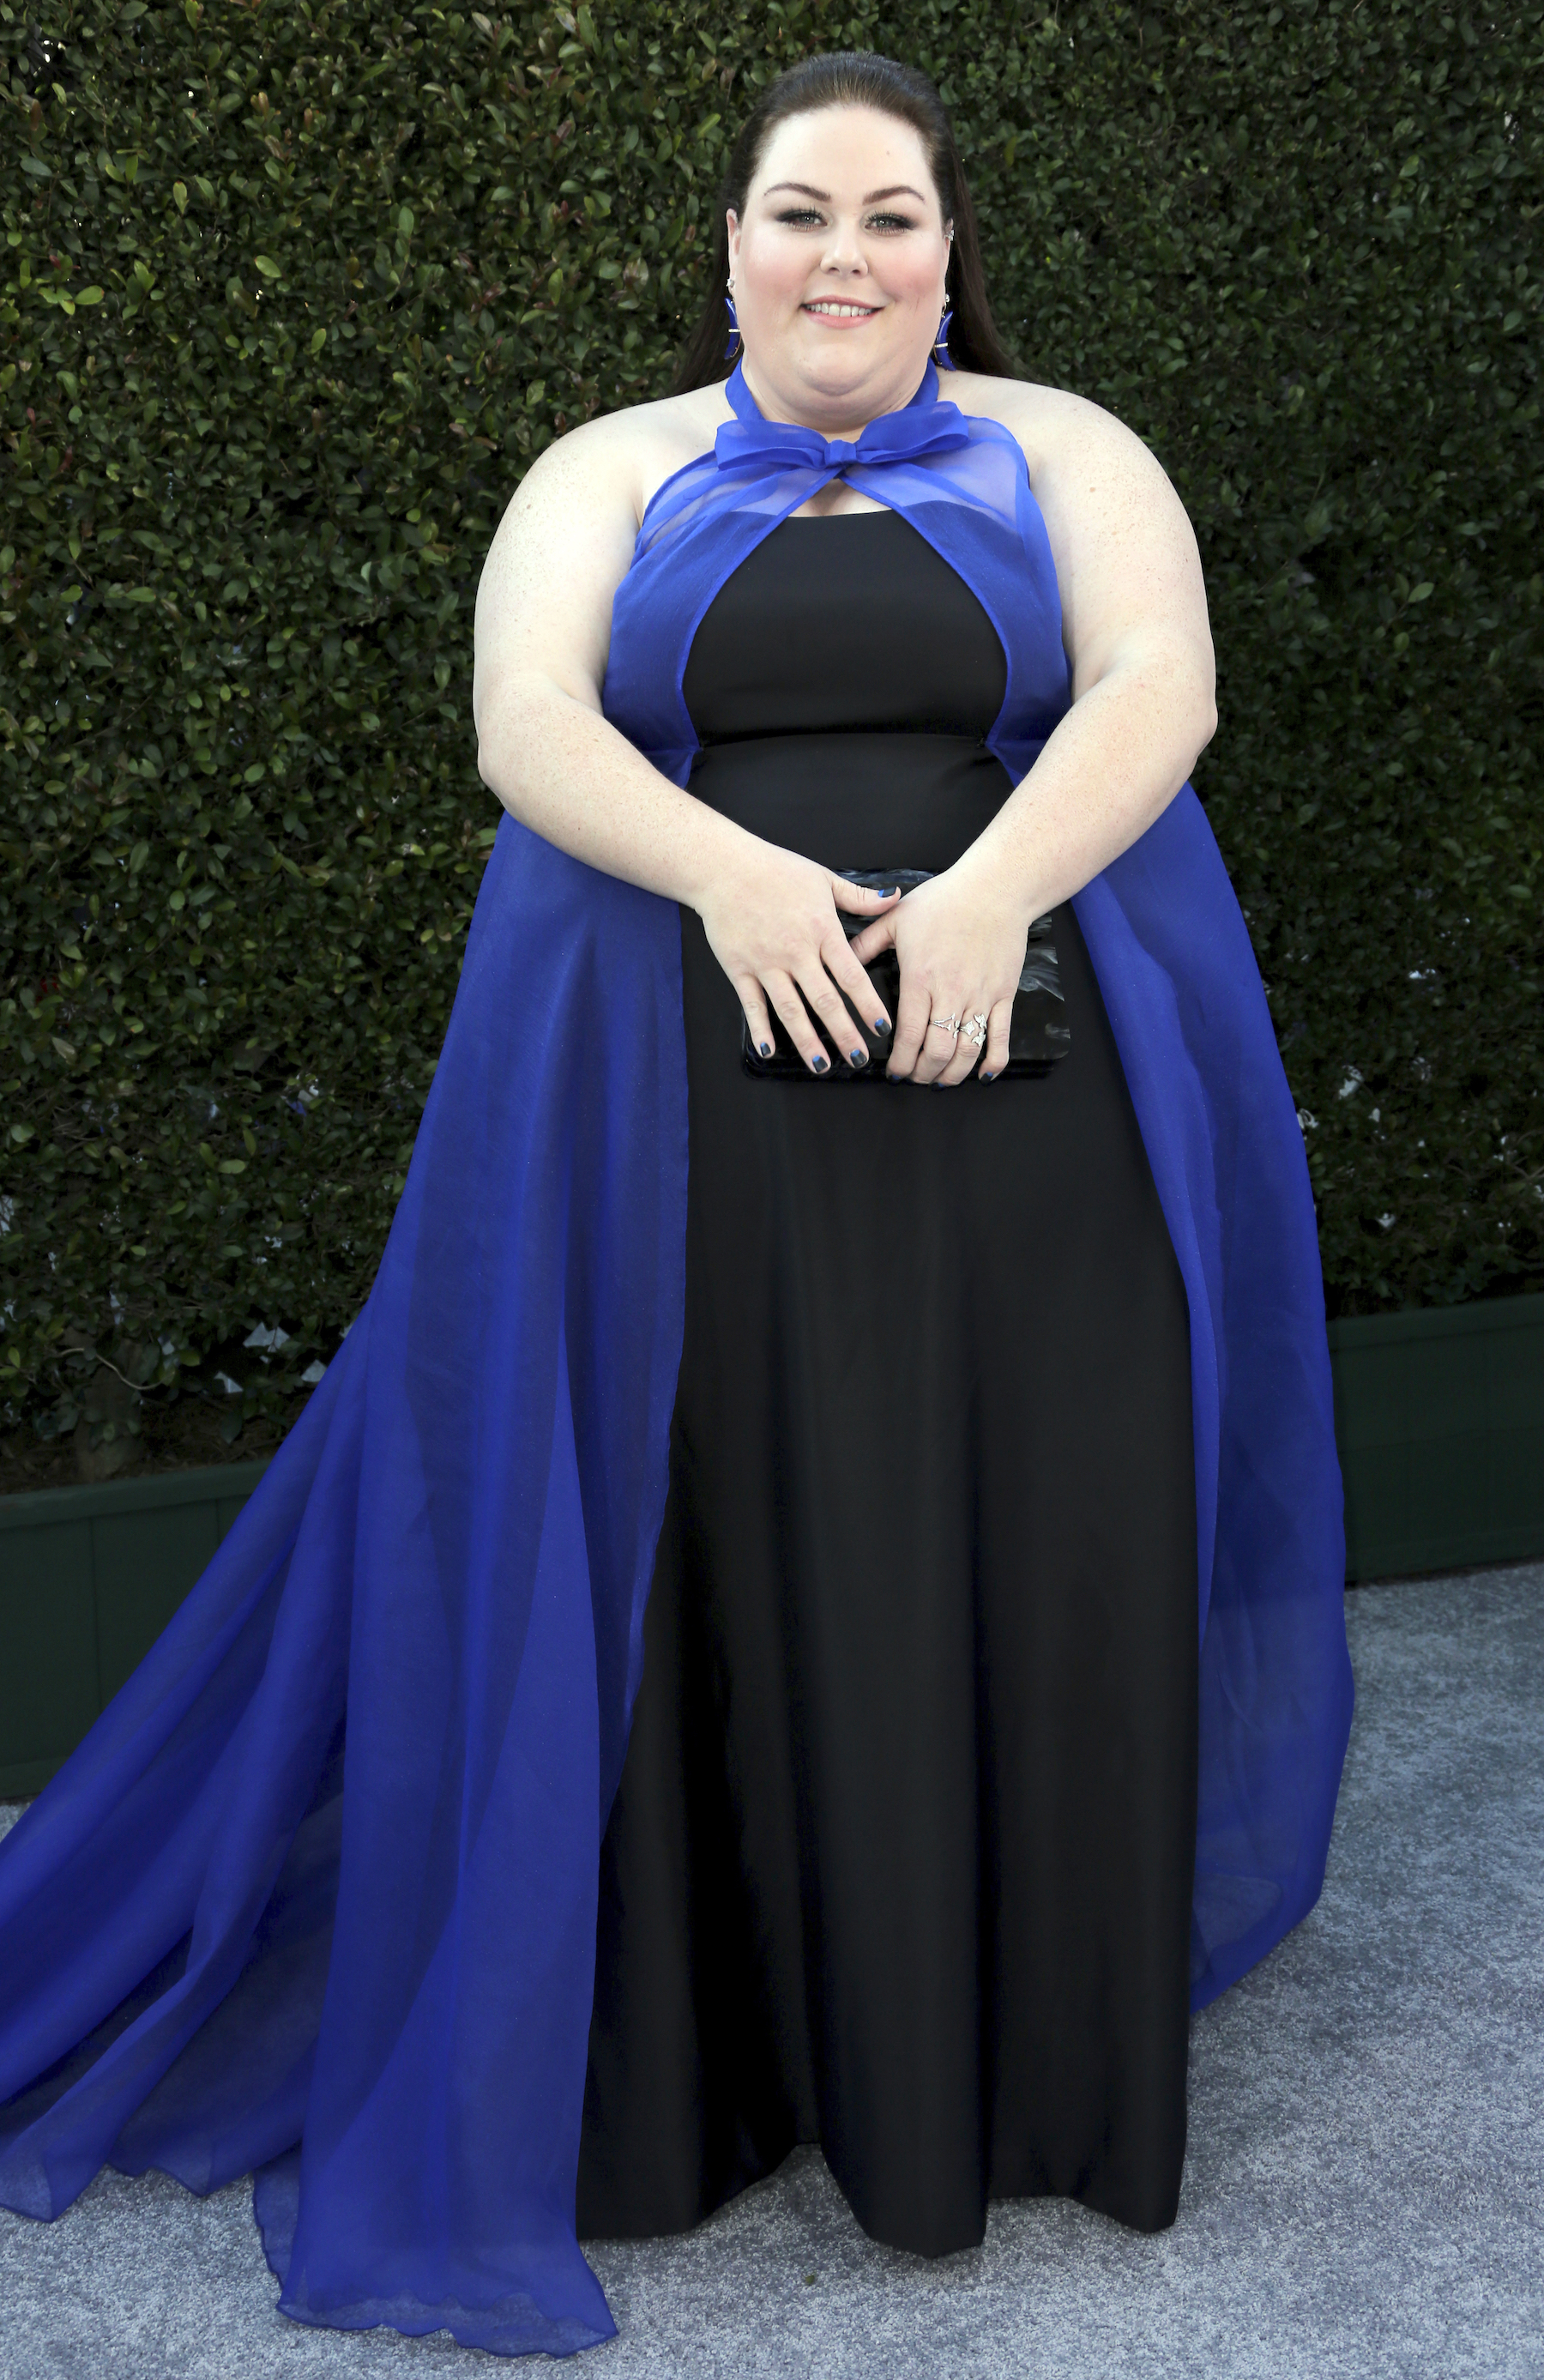 "<div class=""meta image-caption""><div class=""origin-logo origin-image ap""><span>AP</span></div><span class=""caption-text"">Chrissy Metz arrives at the 25th annual Screen Actors Guild Awards at the Shrine Auditorium & Expo Hall on Sunday, Jan. 27, 2019, in Los Angeles. (Willy Sanjuan/Invision/AP)</span></div>"